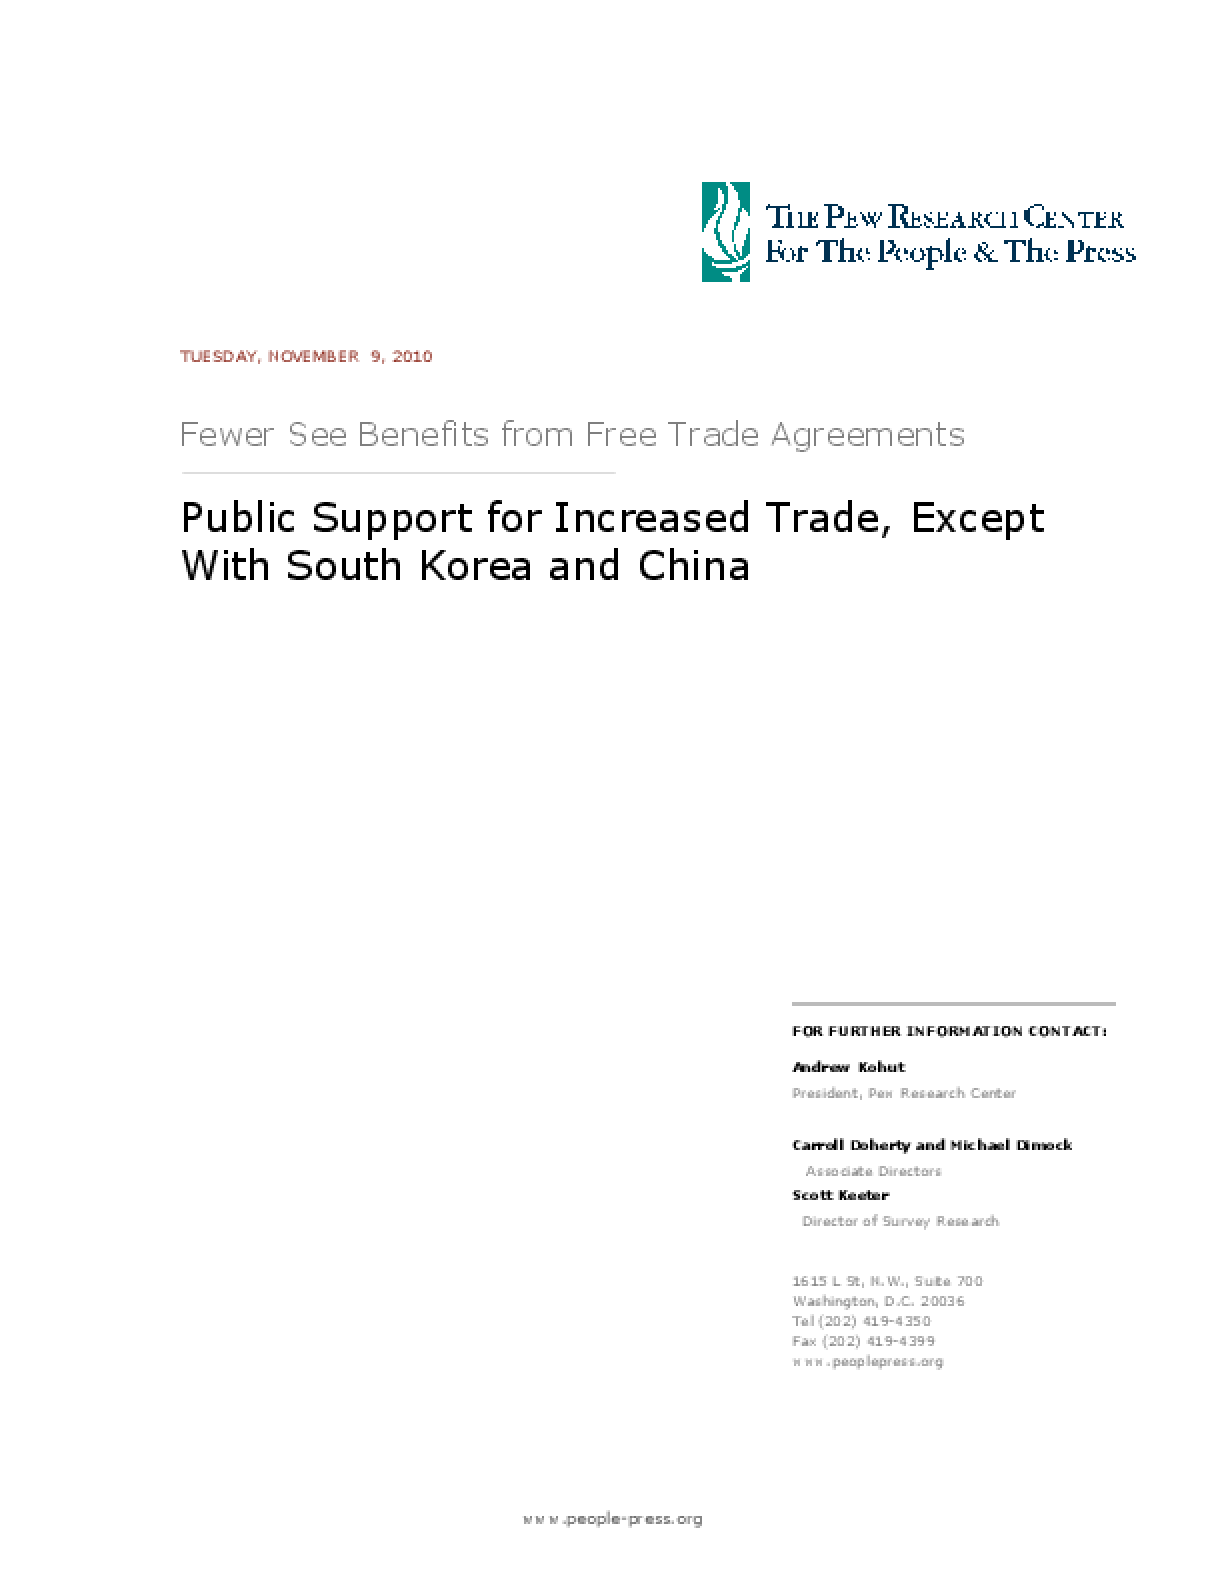 Public Support for Increased Trade, Except With South Korea and China